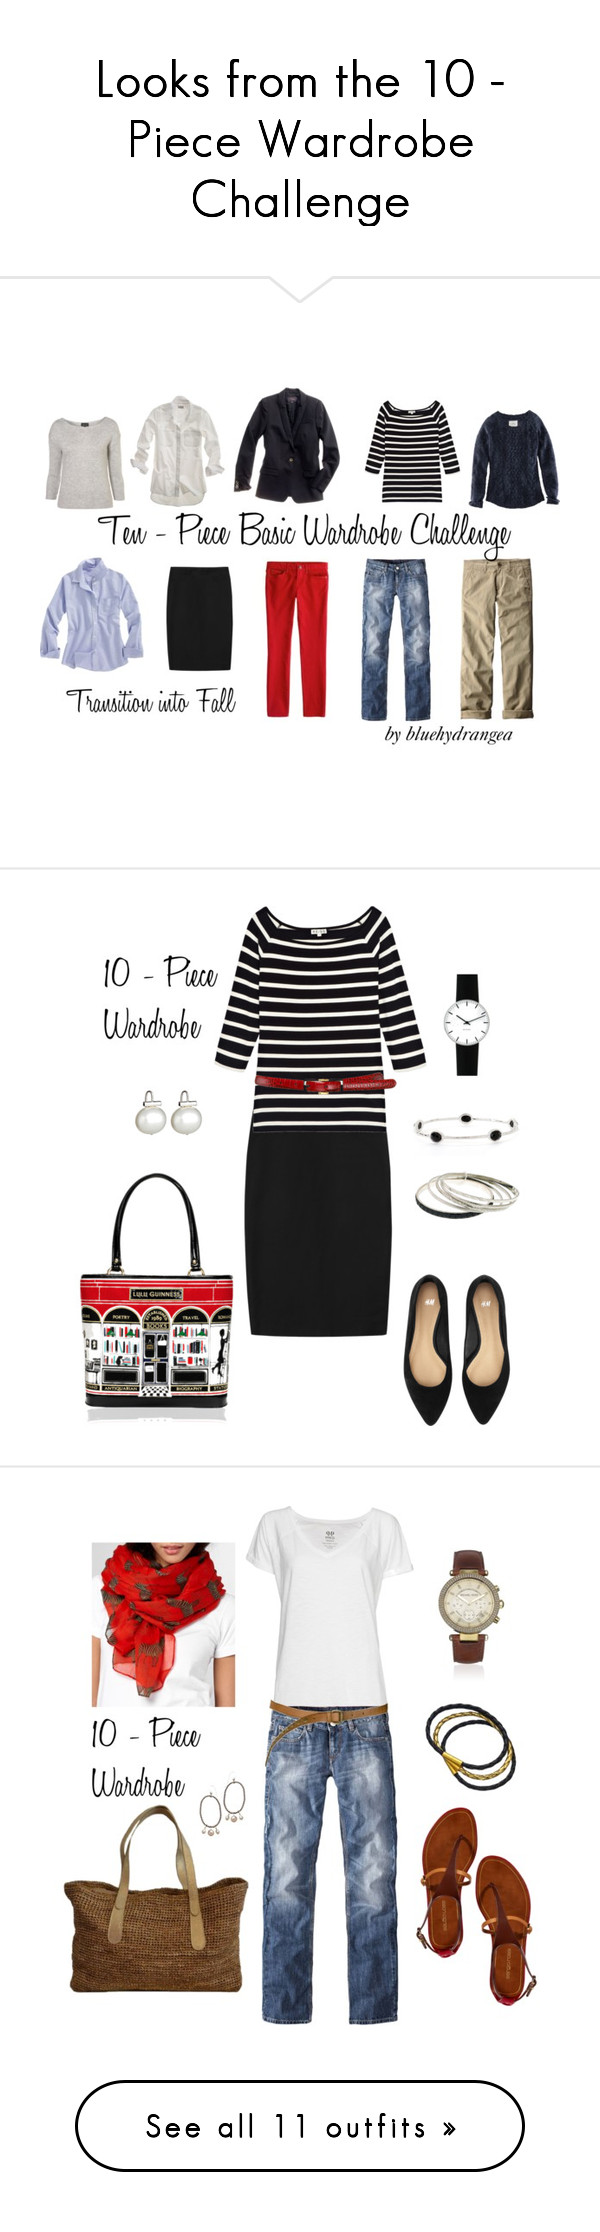 Looks From The 10 Piece Wardrobe Challenge By Bluehydrangea On Polyvore Featuring Polyvore Fashion Style Madewell J Cr 10 Piece Wardrobe Fashion Wardrobe